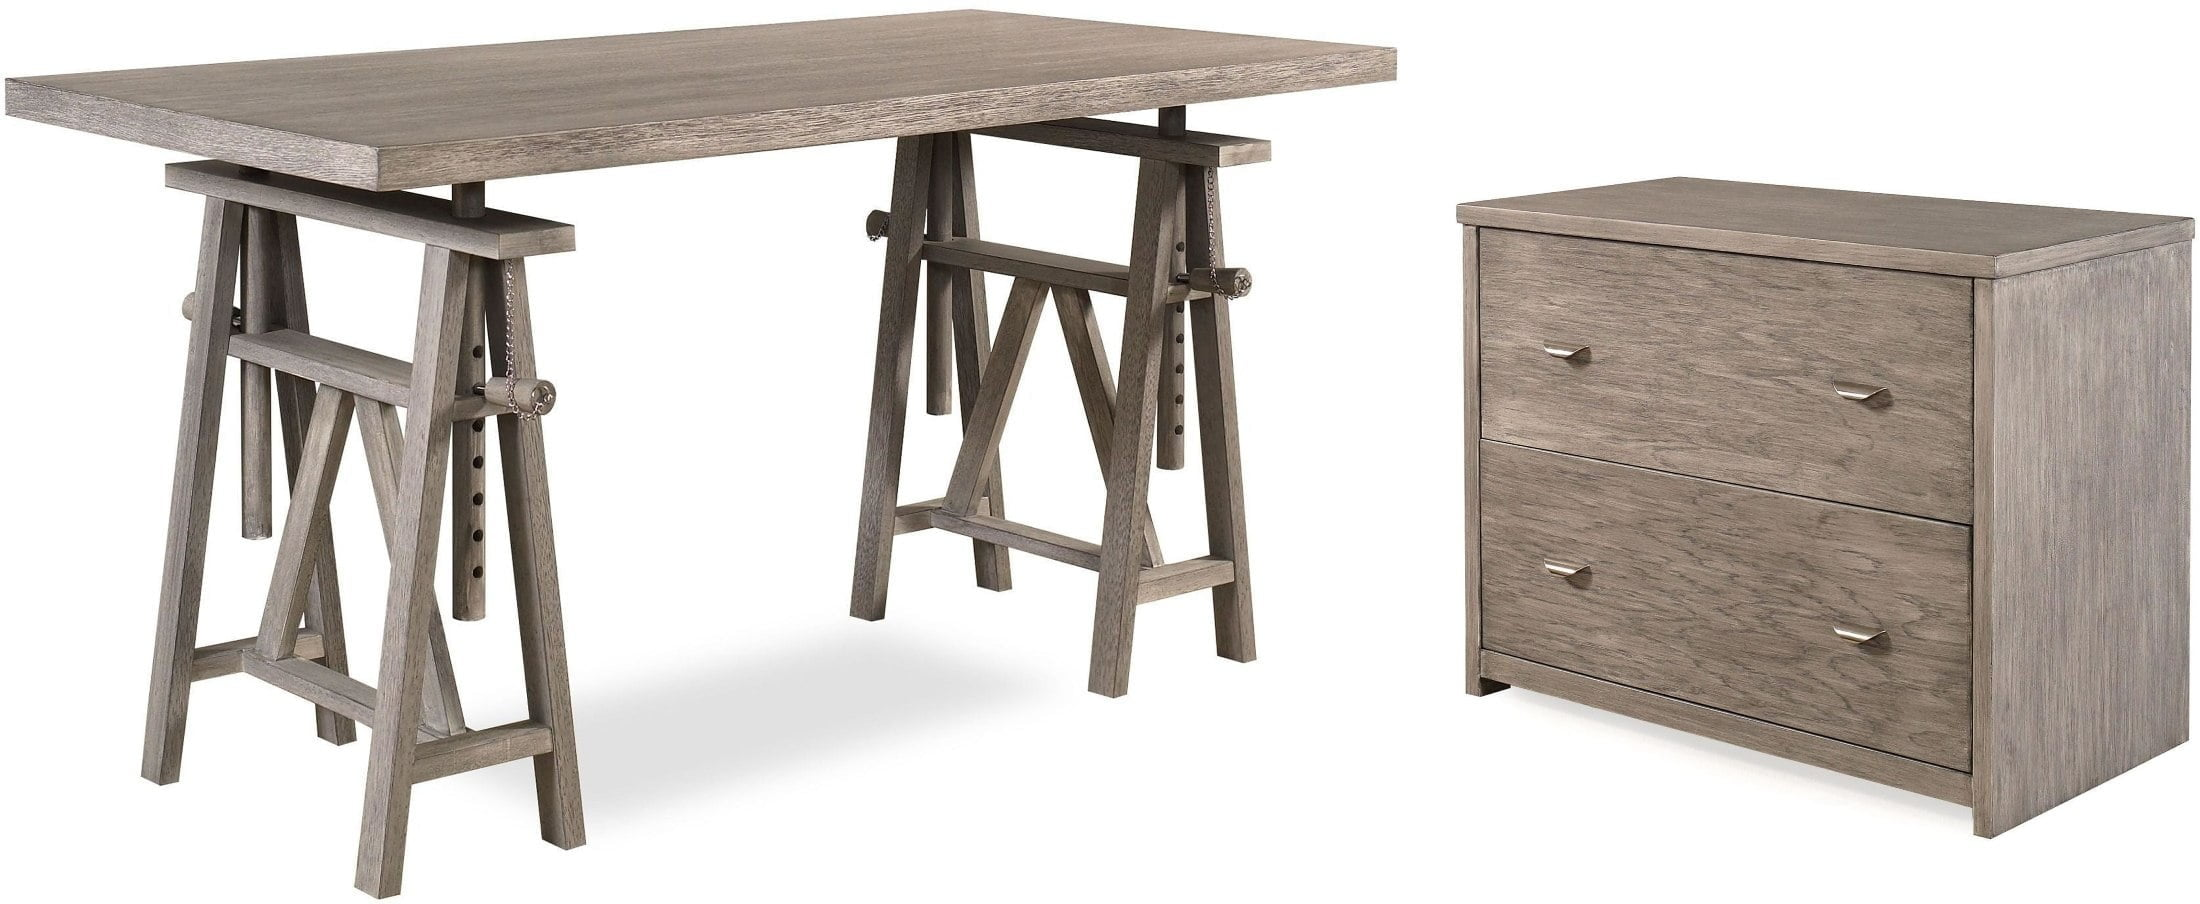 Incroyable Architect Driftwood Home Office Set From Ligna Furniture   Coleman Furniture